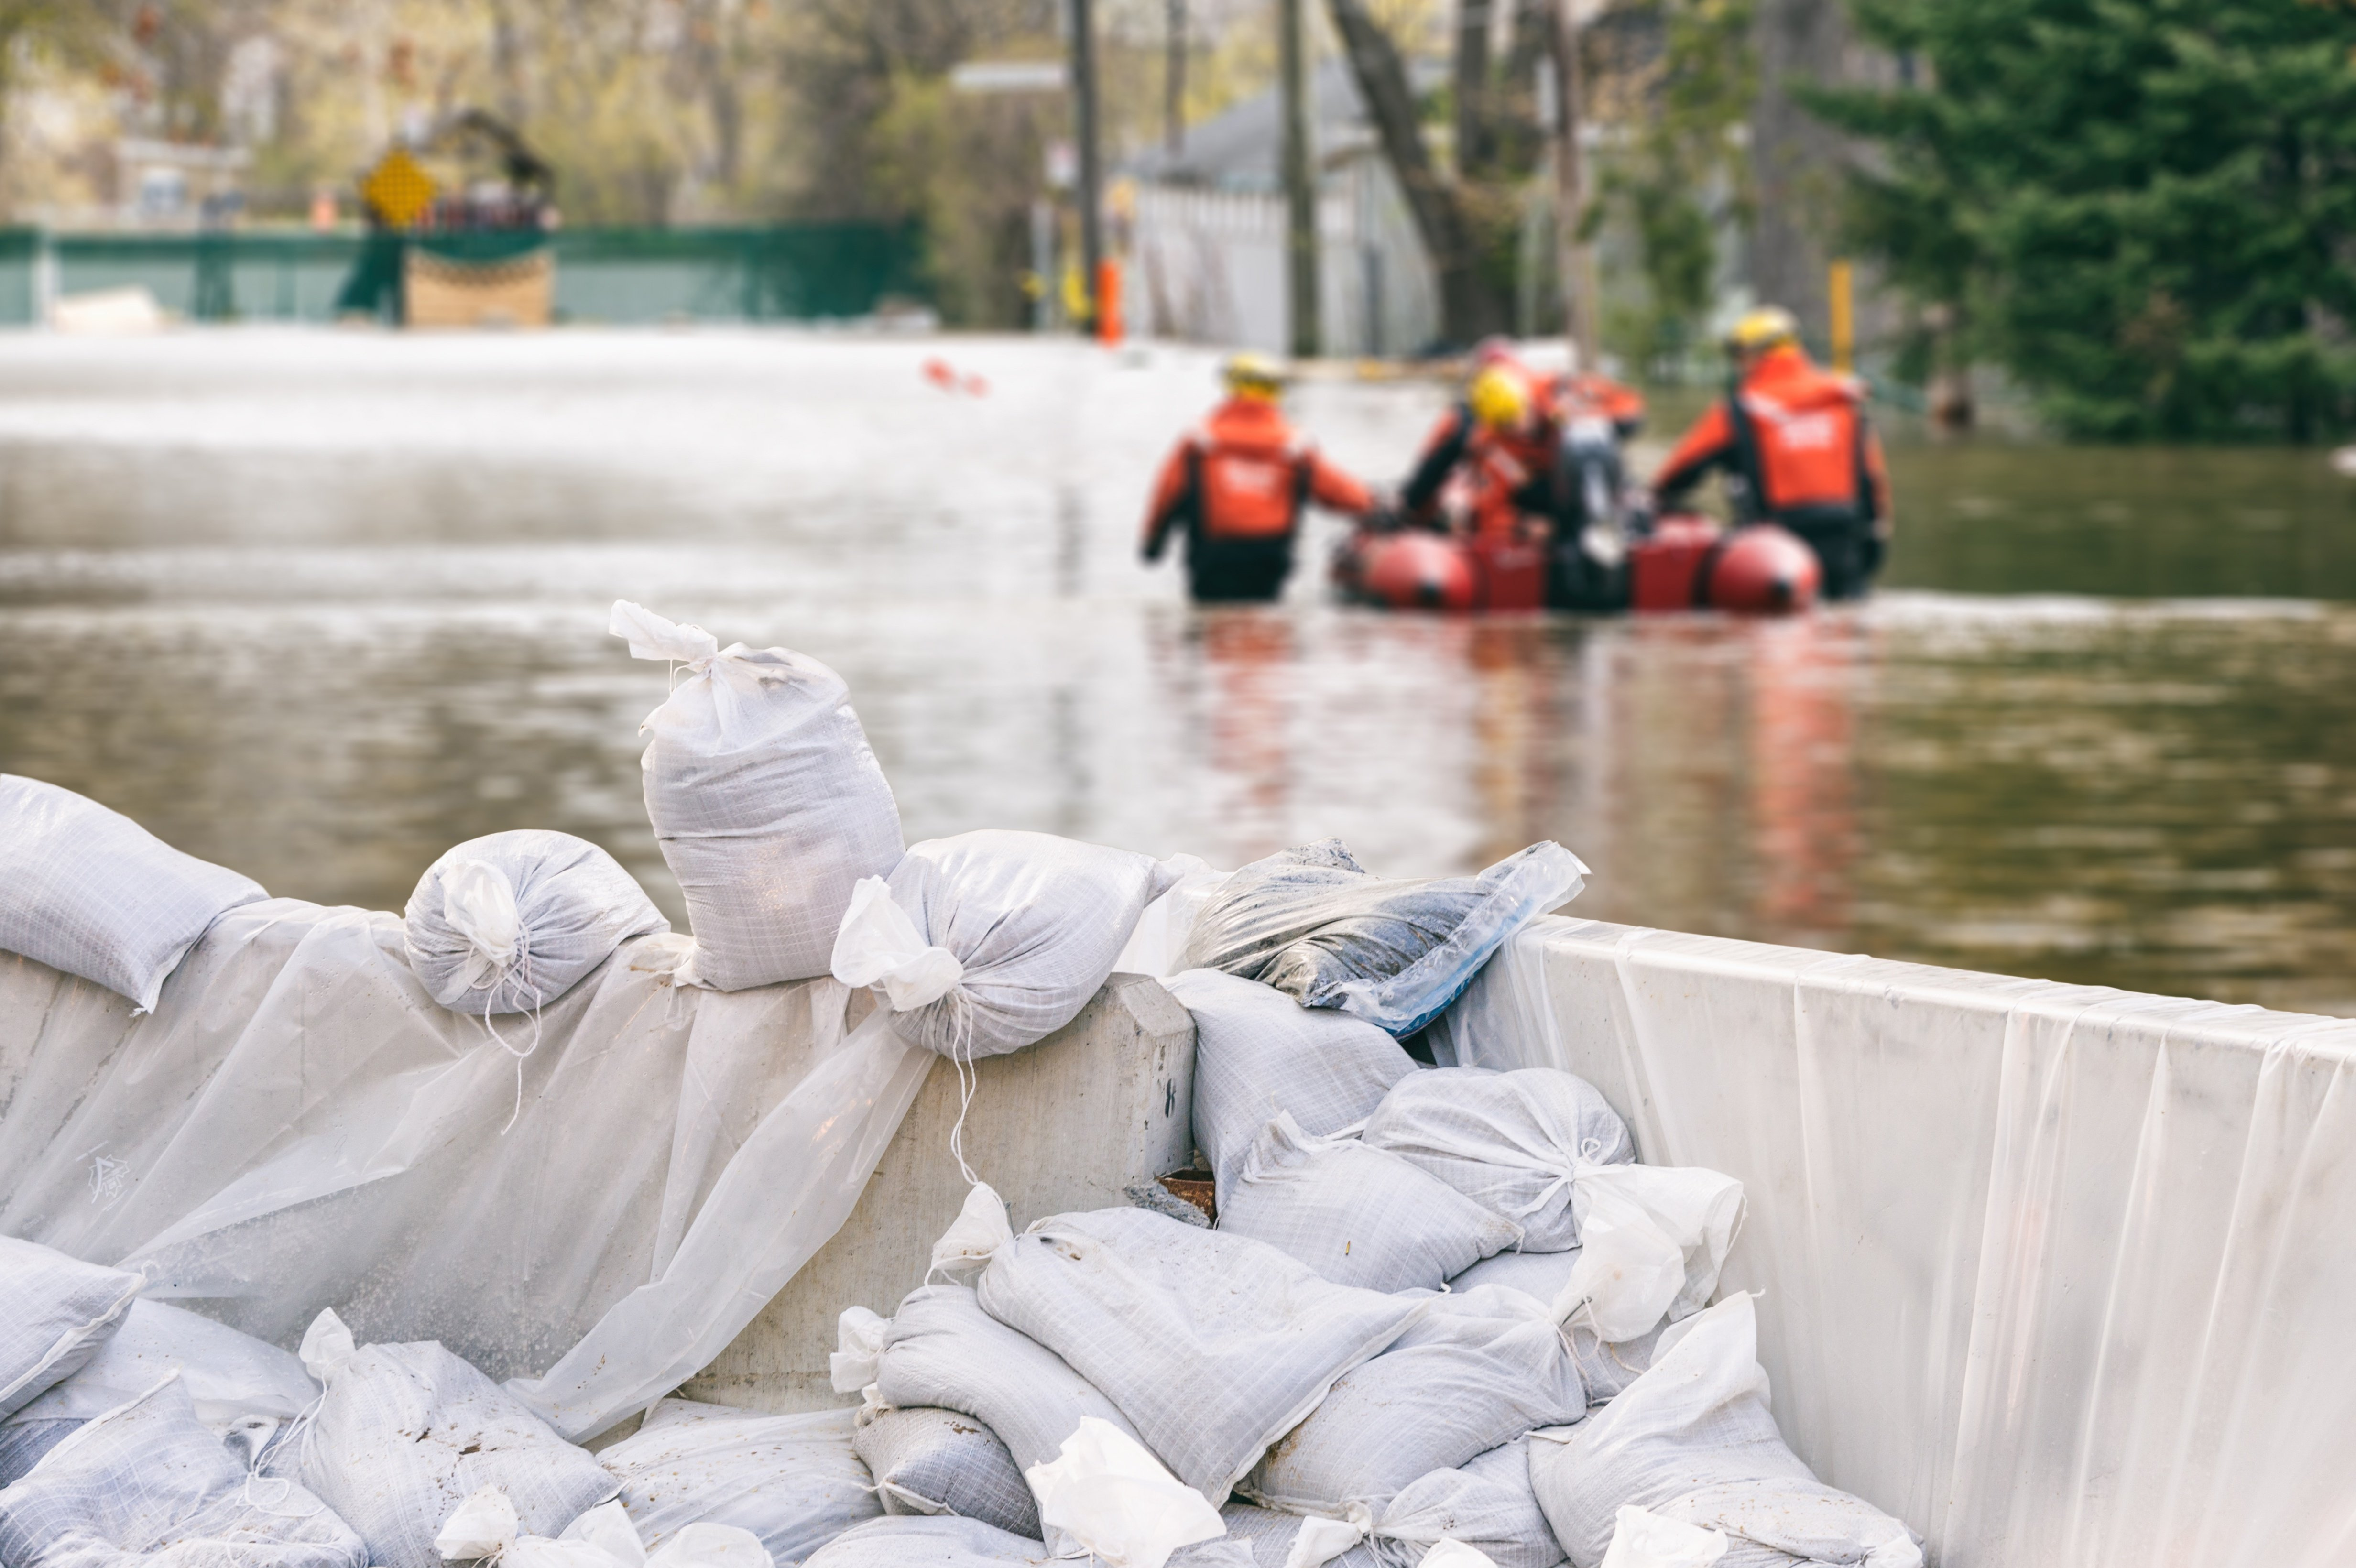 More than 1,000 deaths and $370 billion in damages were associated with hurricanes in 2017.